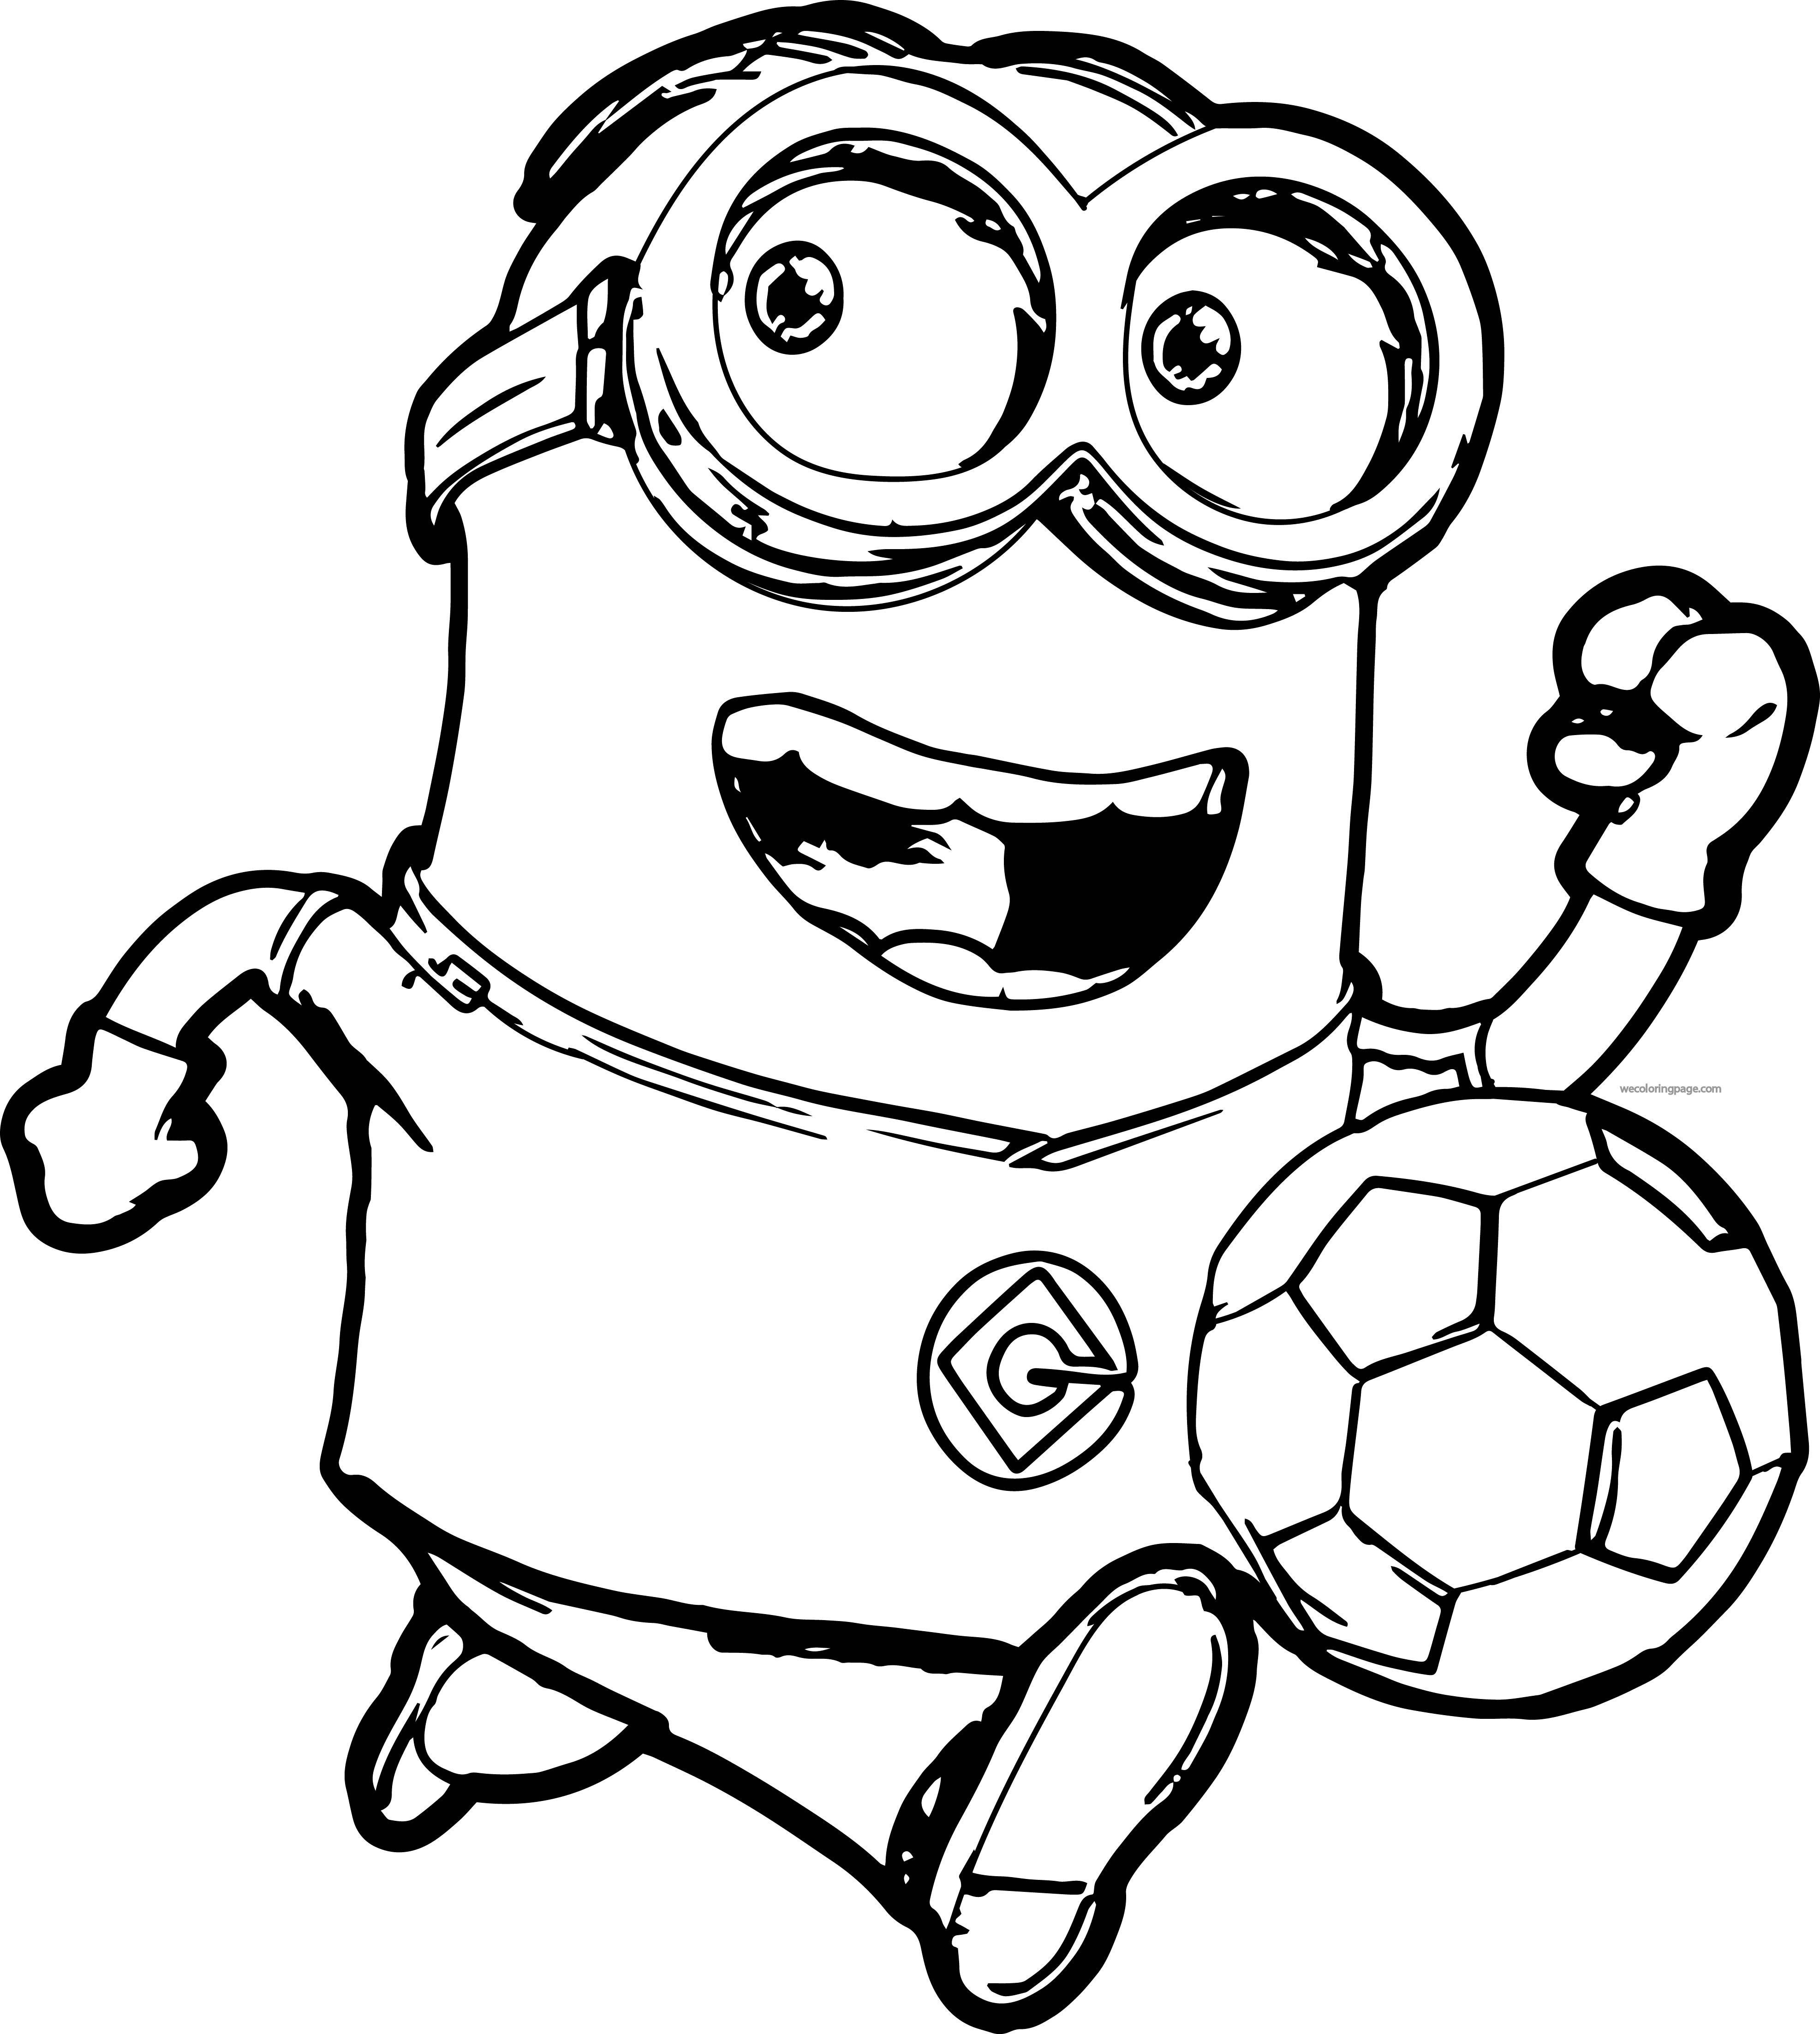 Minion Coloring Template Minion Coloring Pages Minion Coloring Pages Bob Minion Coloring Minion Coloring Pages Minions Coloring Pages Sports Coloring Pages